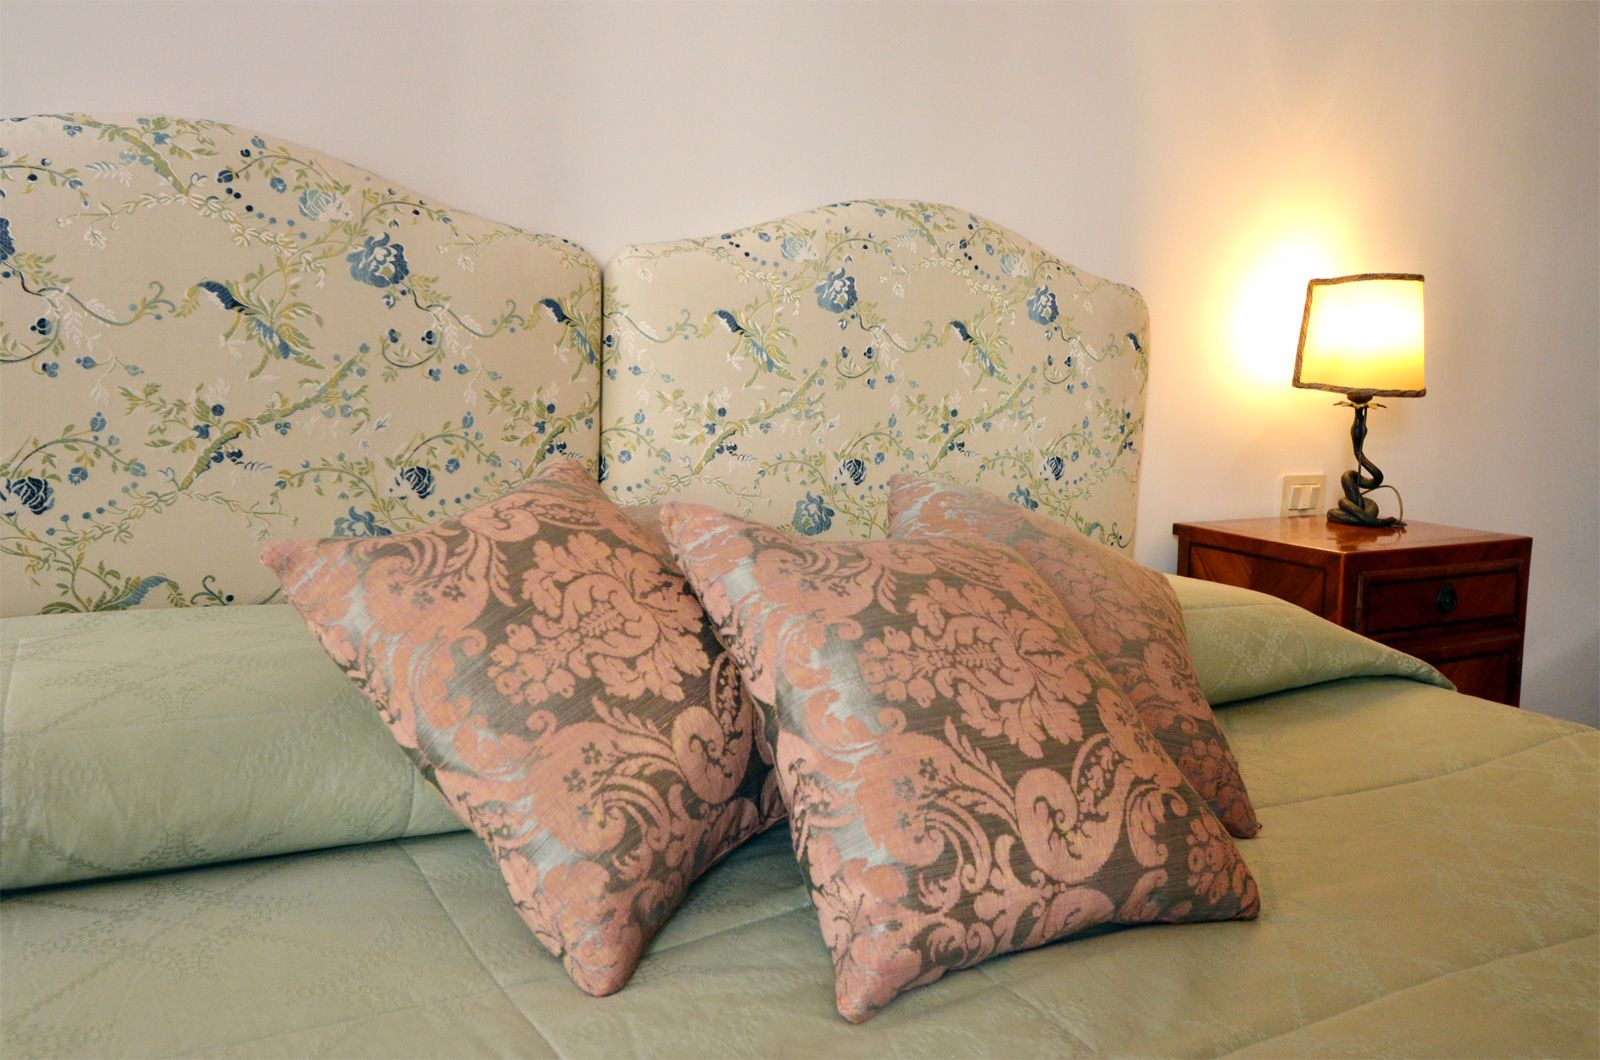 precious Fortuny textiles and soft colors for your total comfort